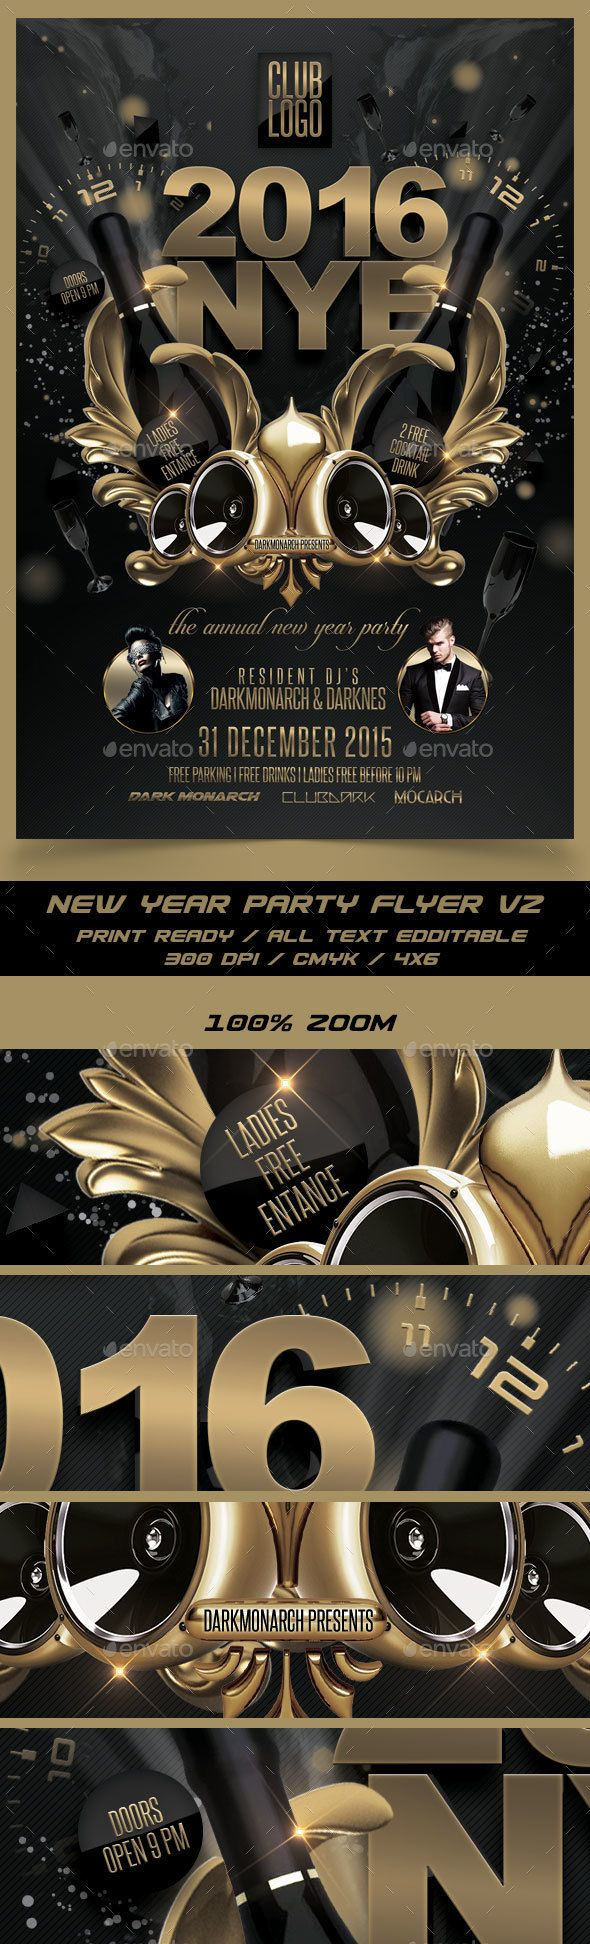 New Year Party Flyer Template PSD #design Download: http://graphicriver.net/item/new-year-party-flyer-v2/14100897?ref=ksioks